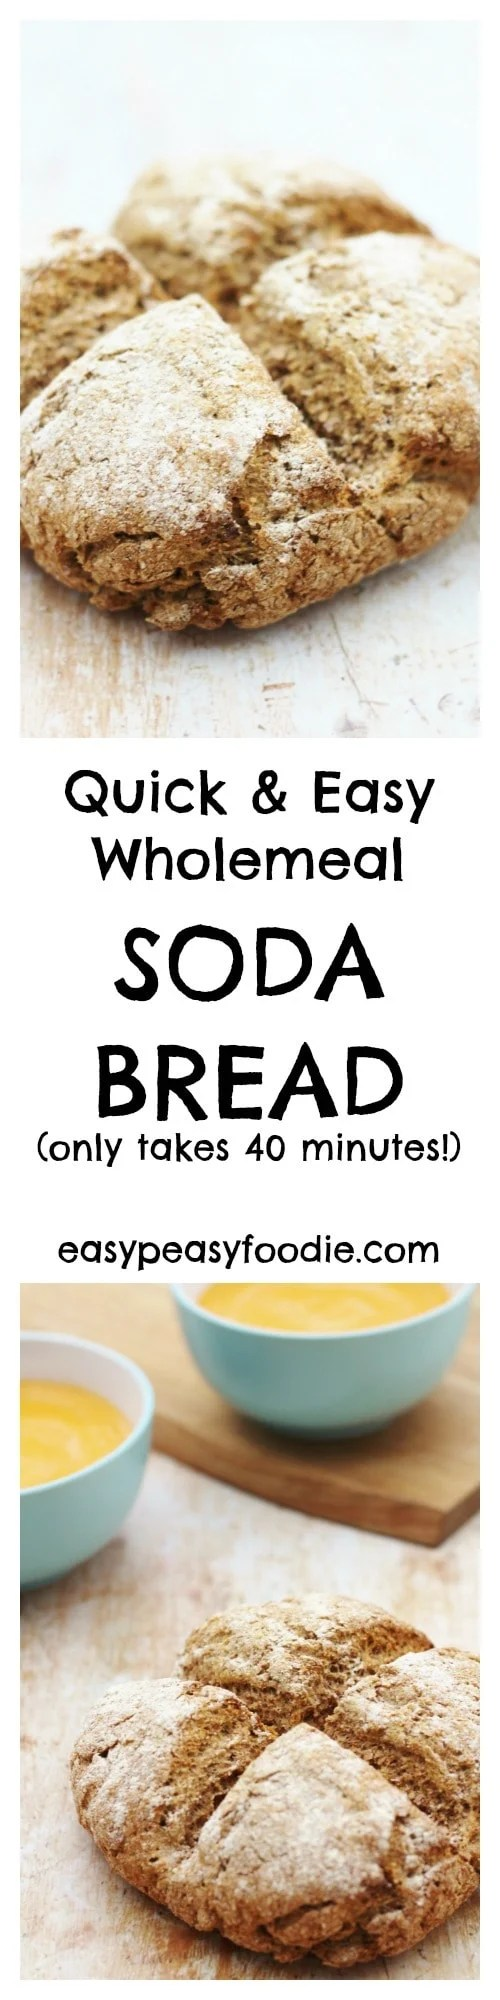 Delicious, crusty wholemeal bread in under 40 minutes? Yes it is possible! My Easy Wholemeal Soda Bread is amazing warm from the oven and perfect with soups and stews. #bread #sodabread #wholemealbread #easybread #quickbread #nokneadbread #stpatricksday #irish #healthyrecipes #easyrecipes #easypeasyfoodie